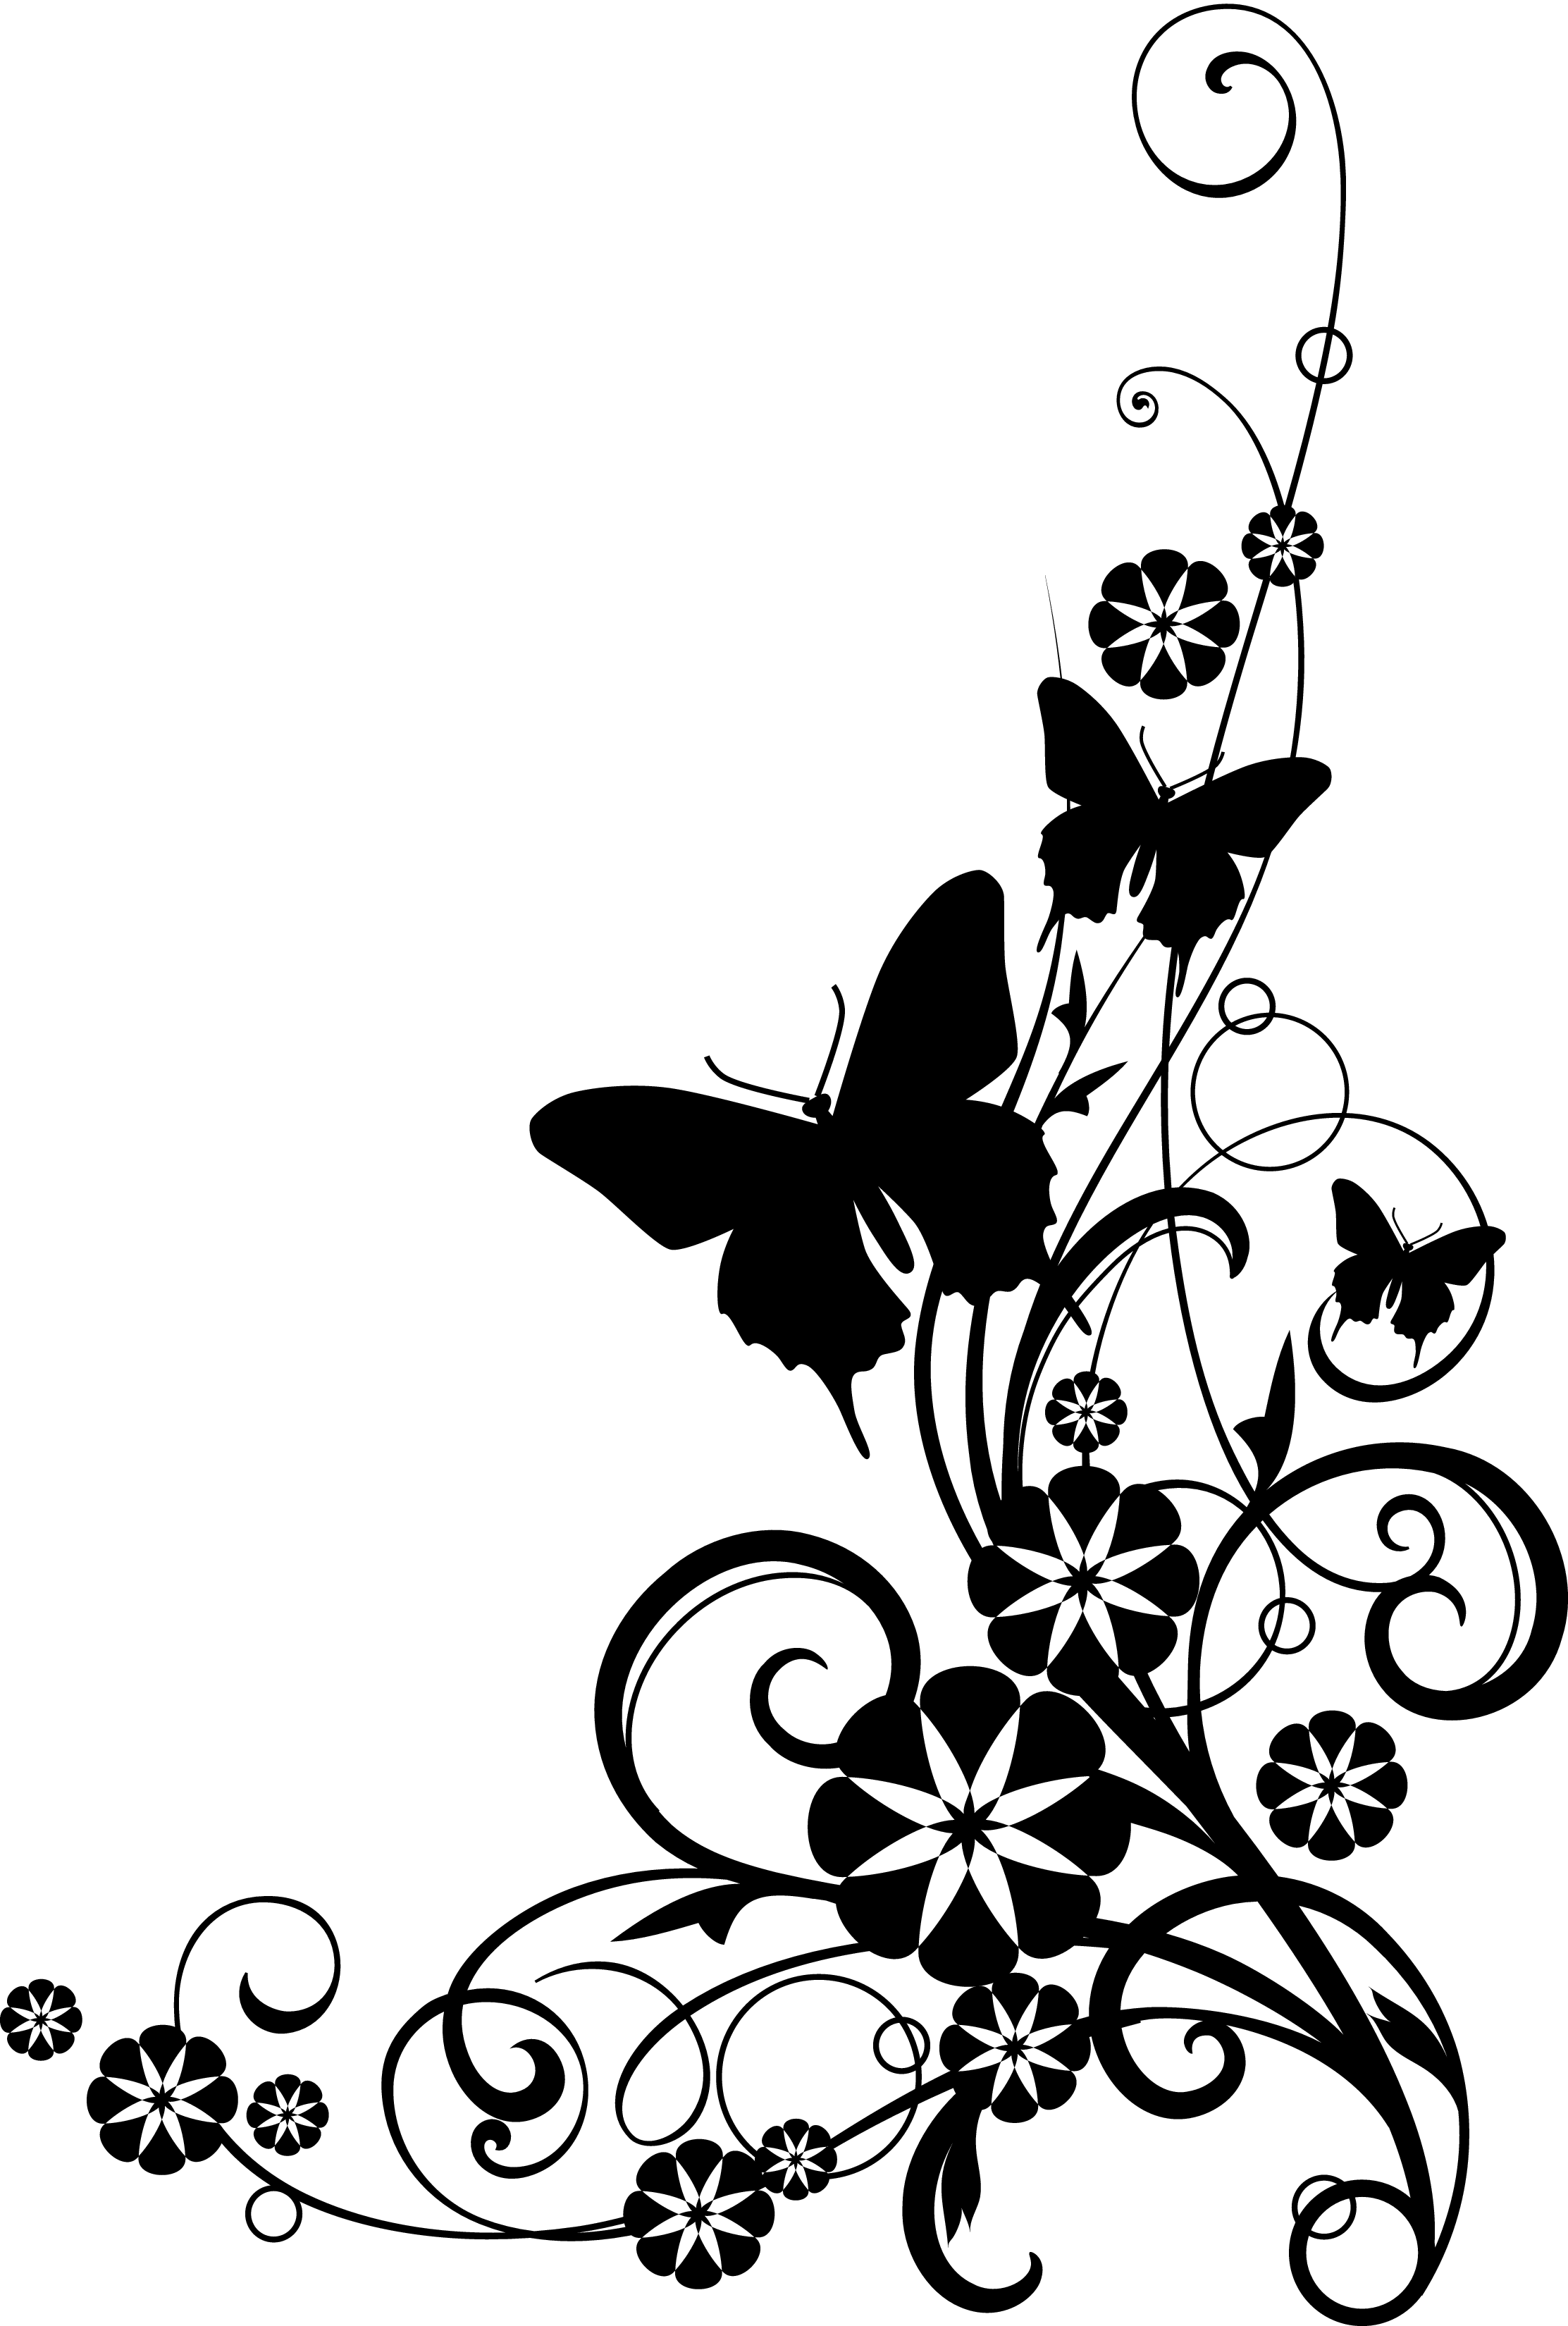 Spring clipart black and white free download best spring clipart 2225x3300 best flower clipart black and white mightylinksfo